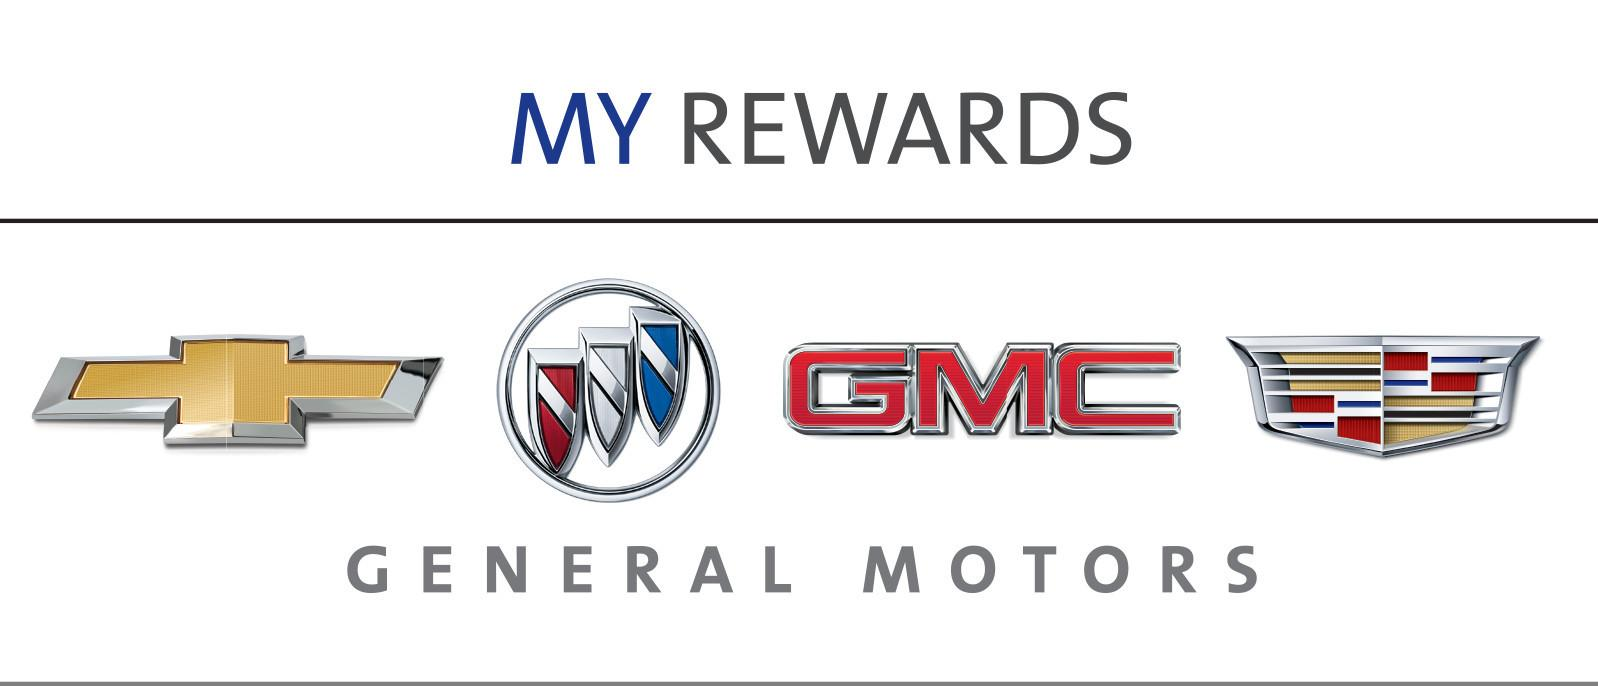 GM My Rewards